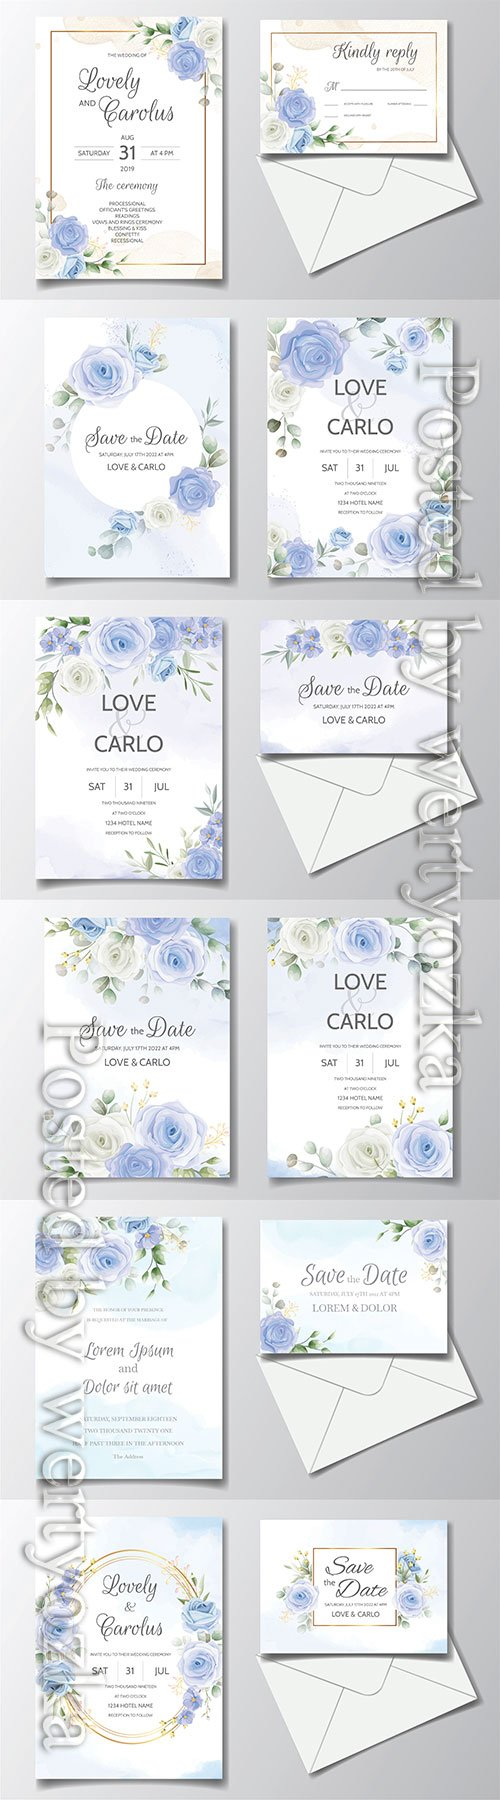 Vintage wedding invitation with blue roses in vector